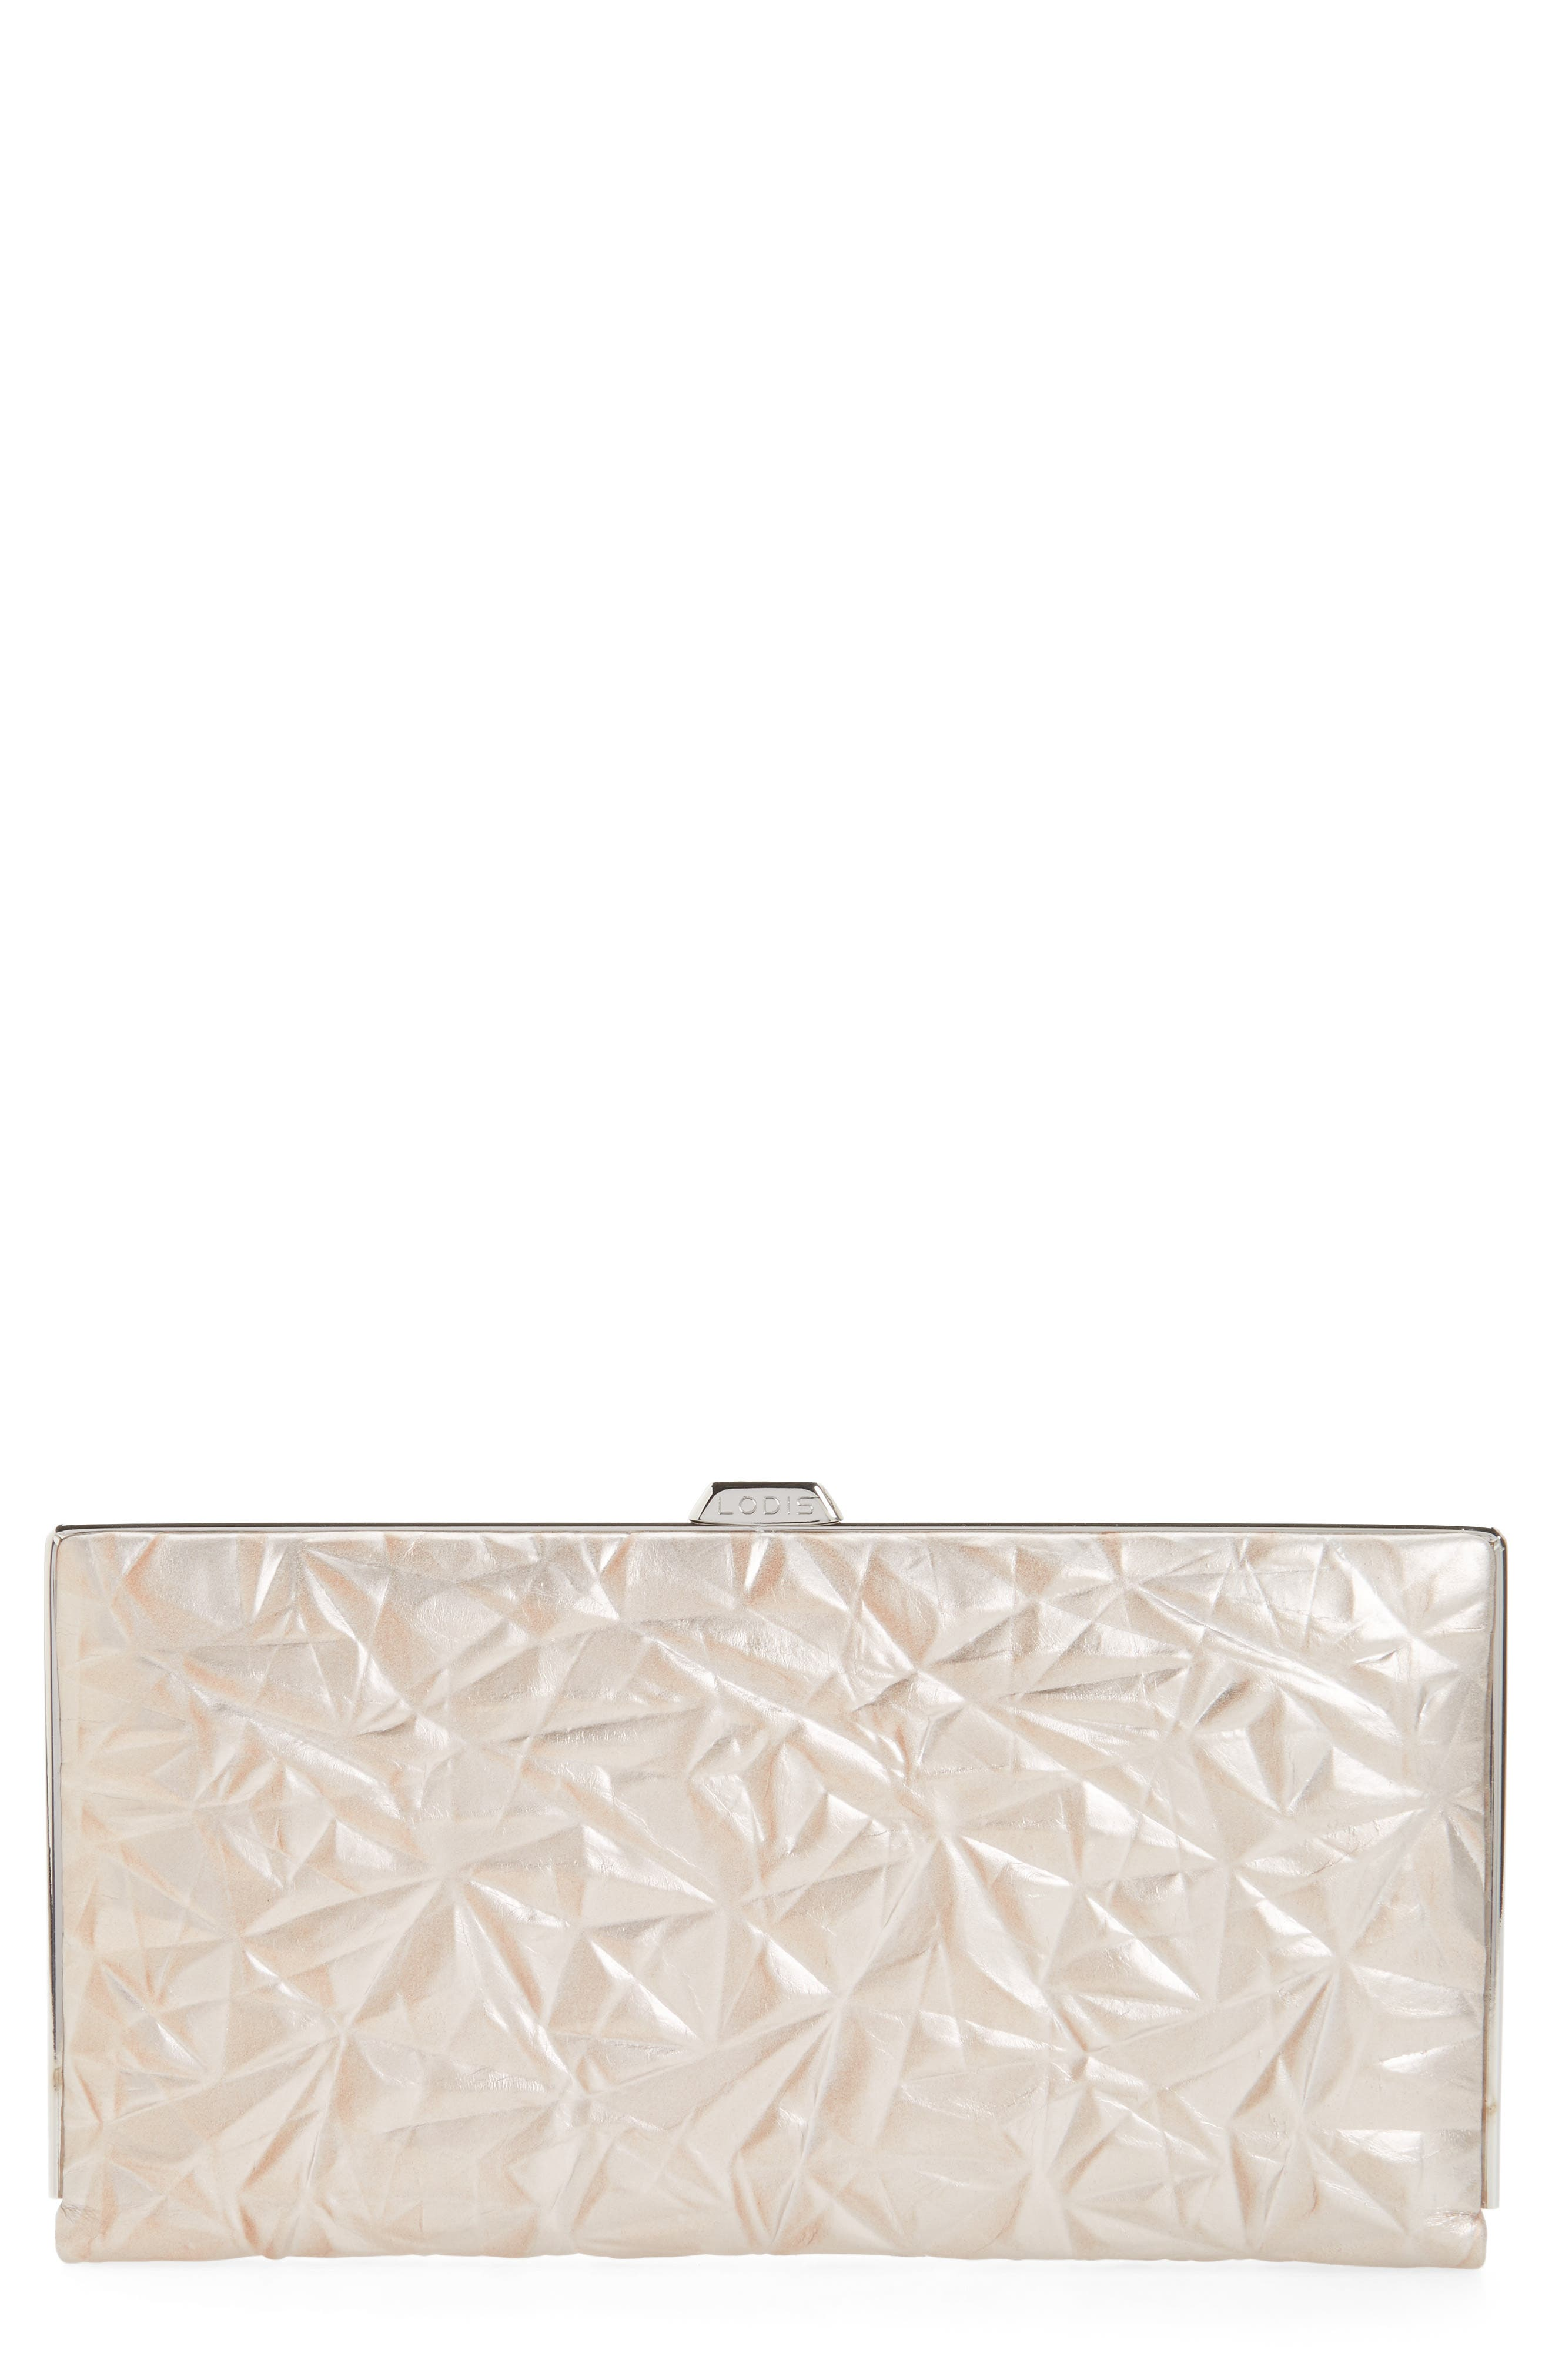 Alternate Image 1 Selected - Lodis Quinn Clutch Wallet